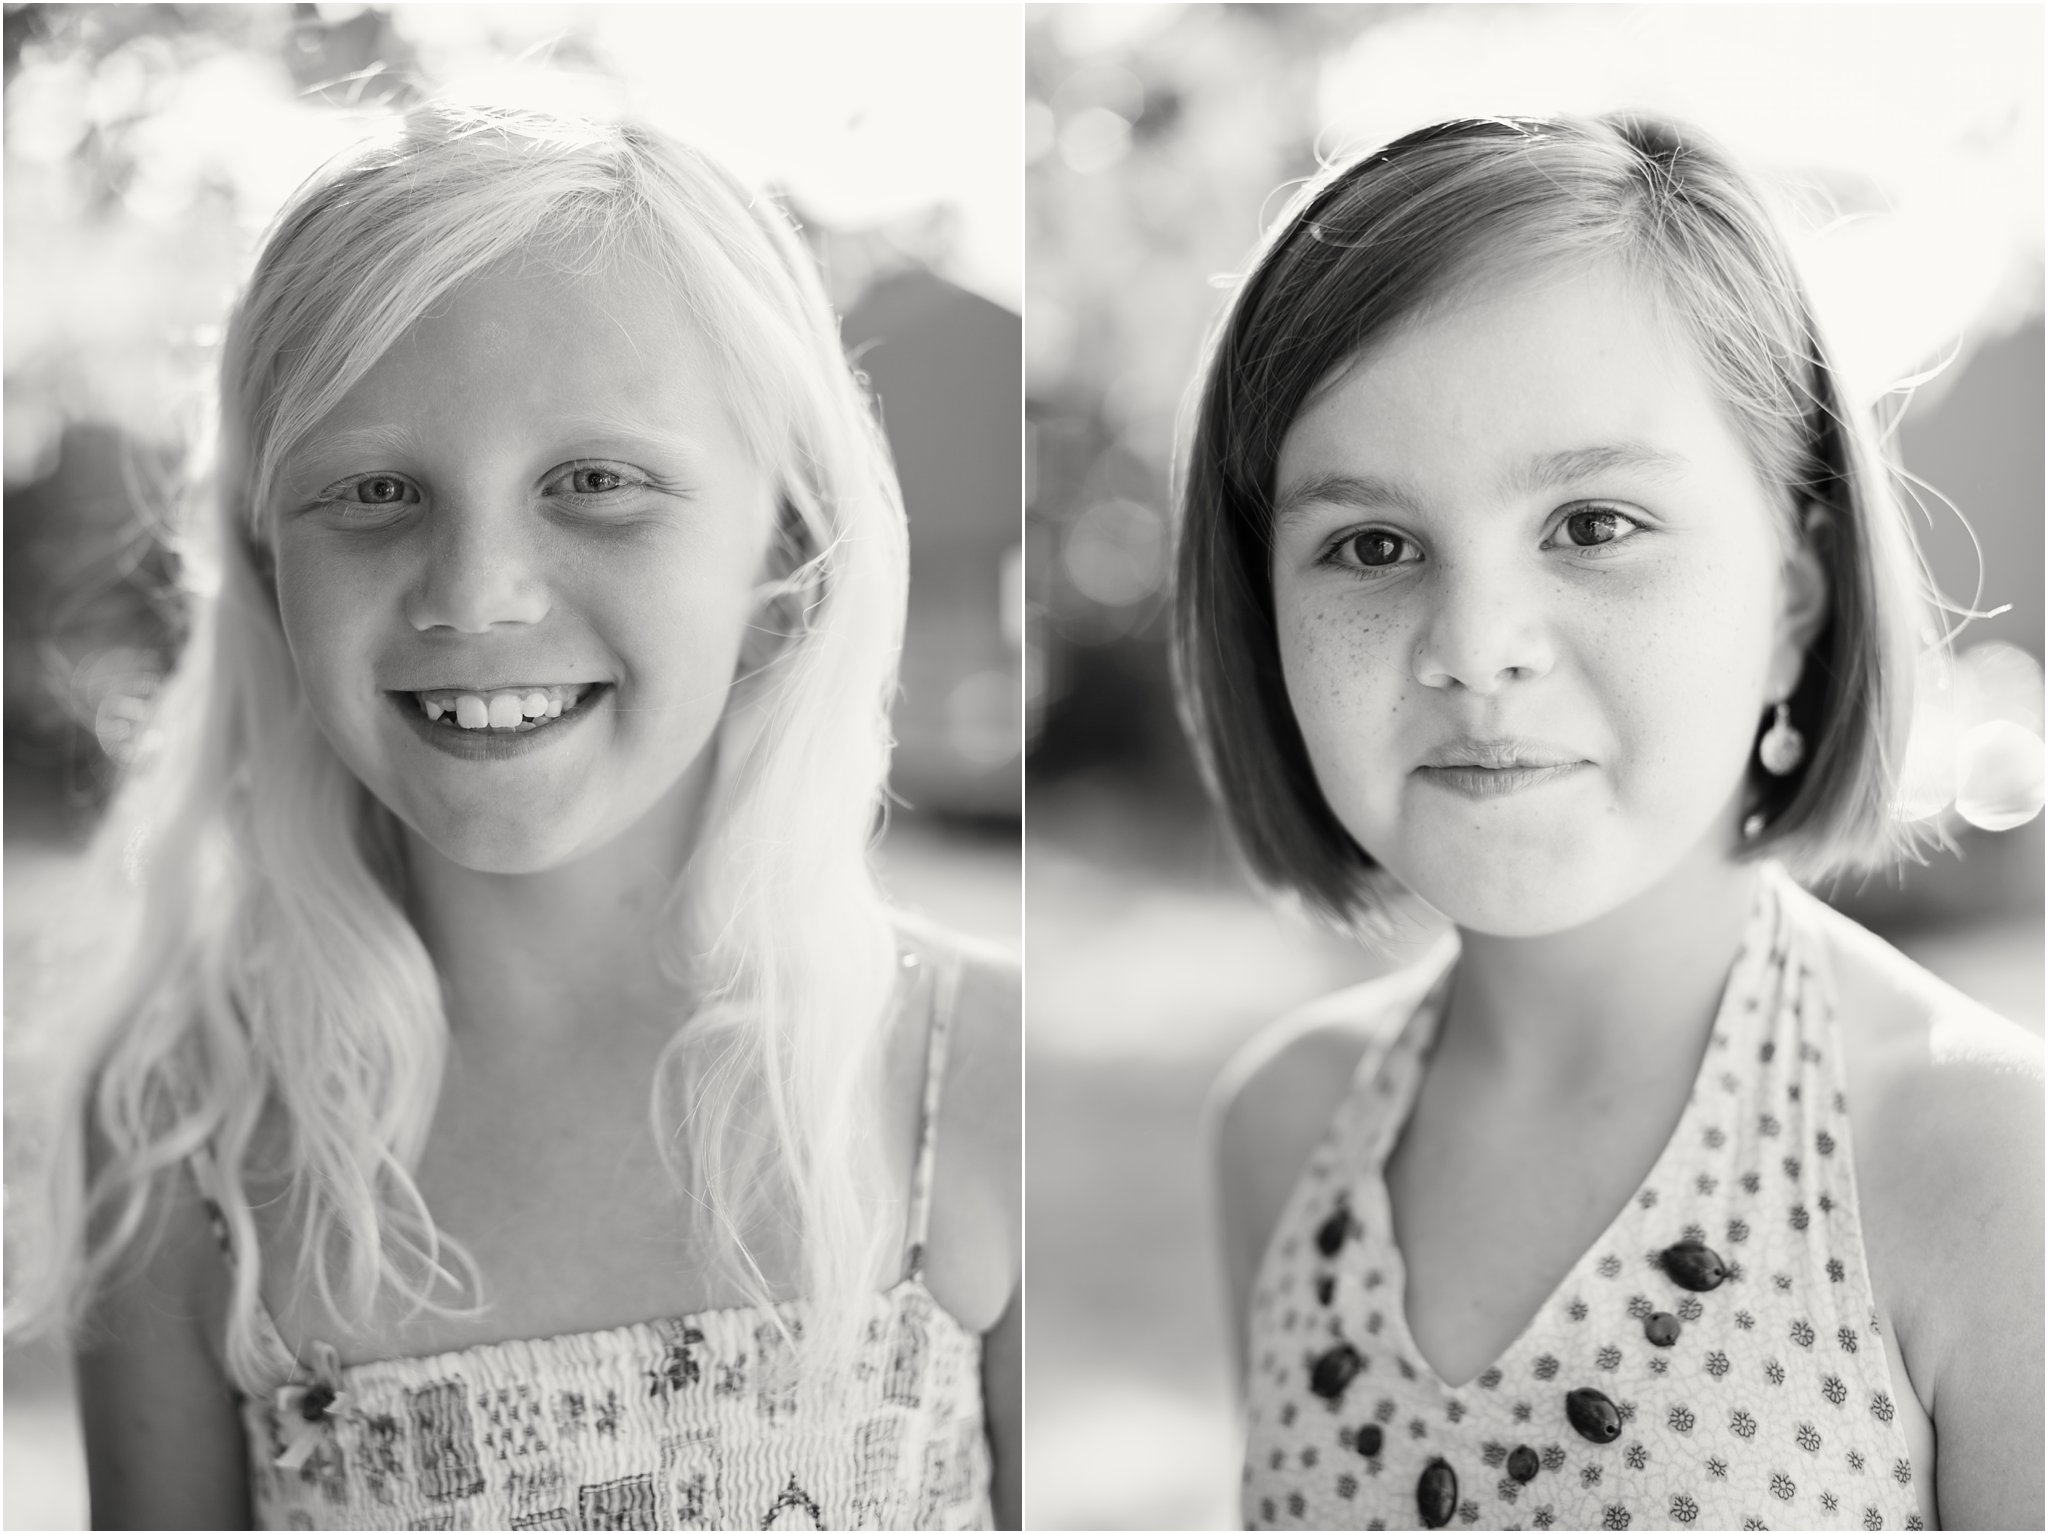 Childrens' Portraits in Black and White 2